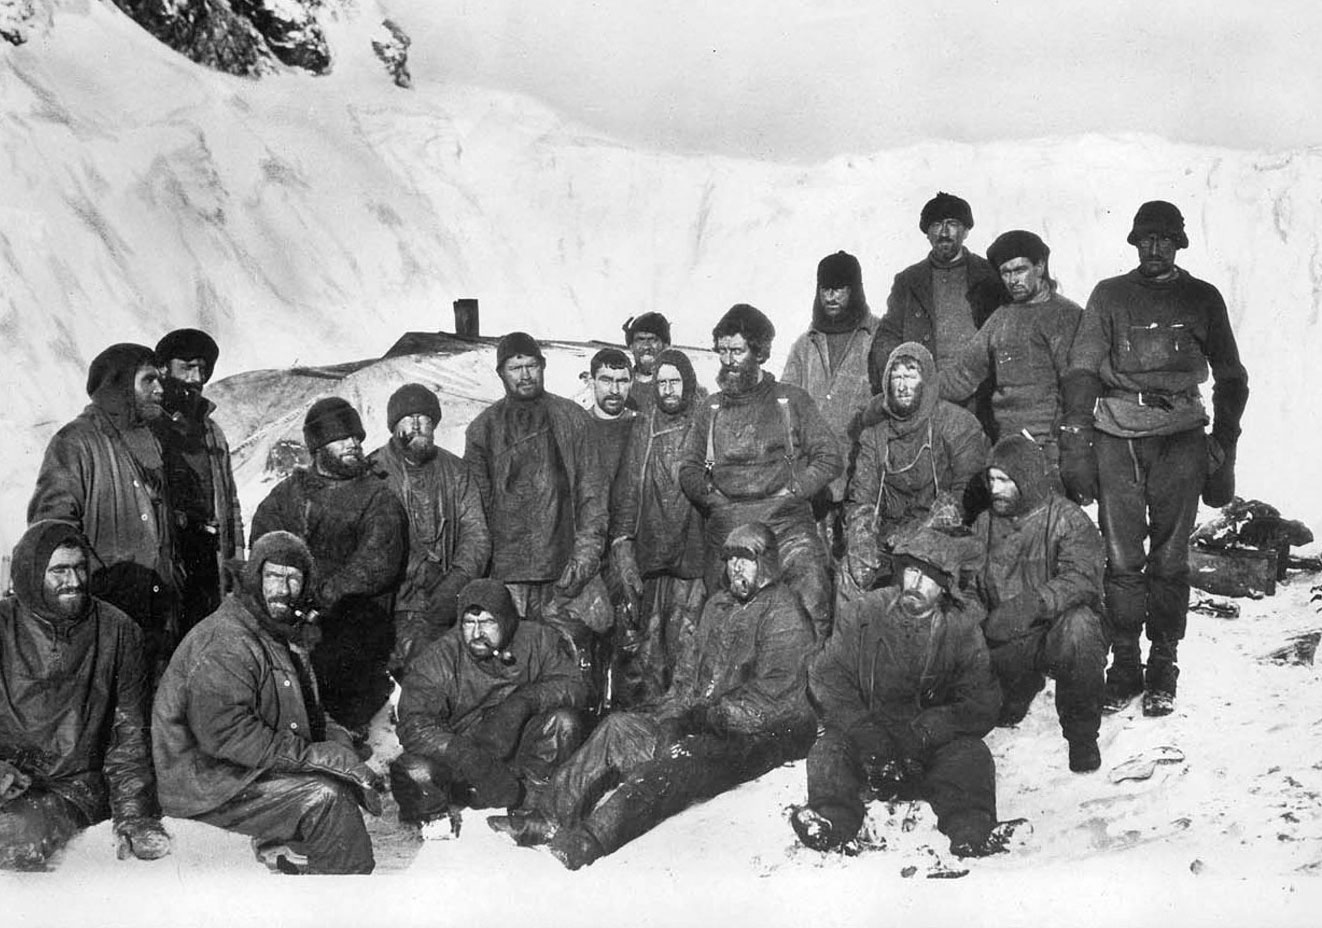 Twenty men standing on an icy island with thick snowsuit on.